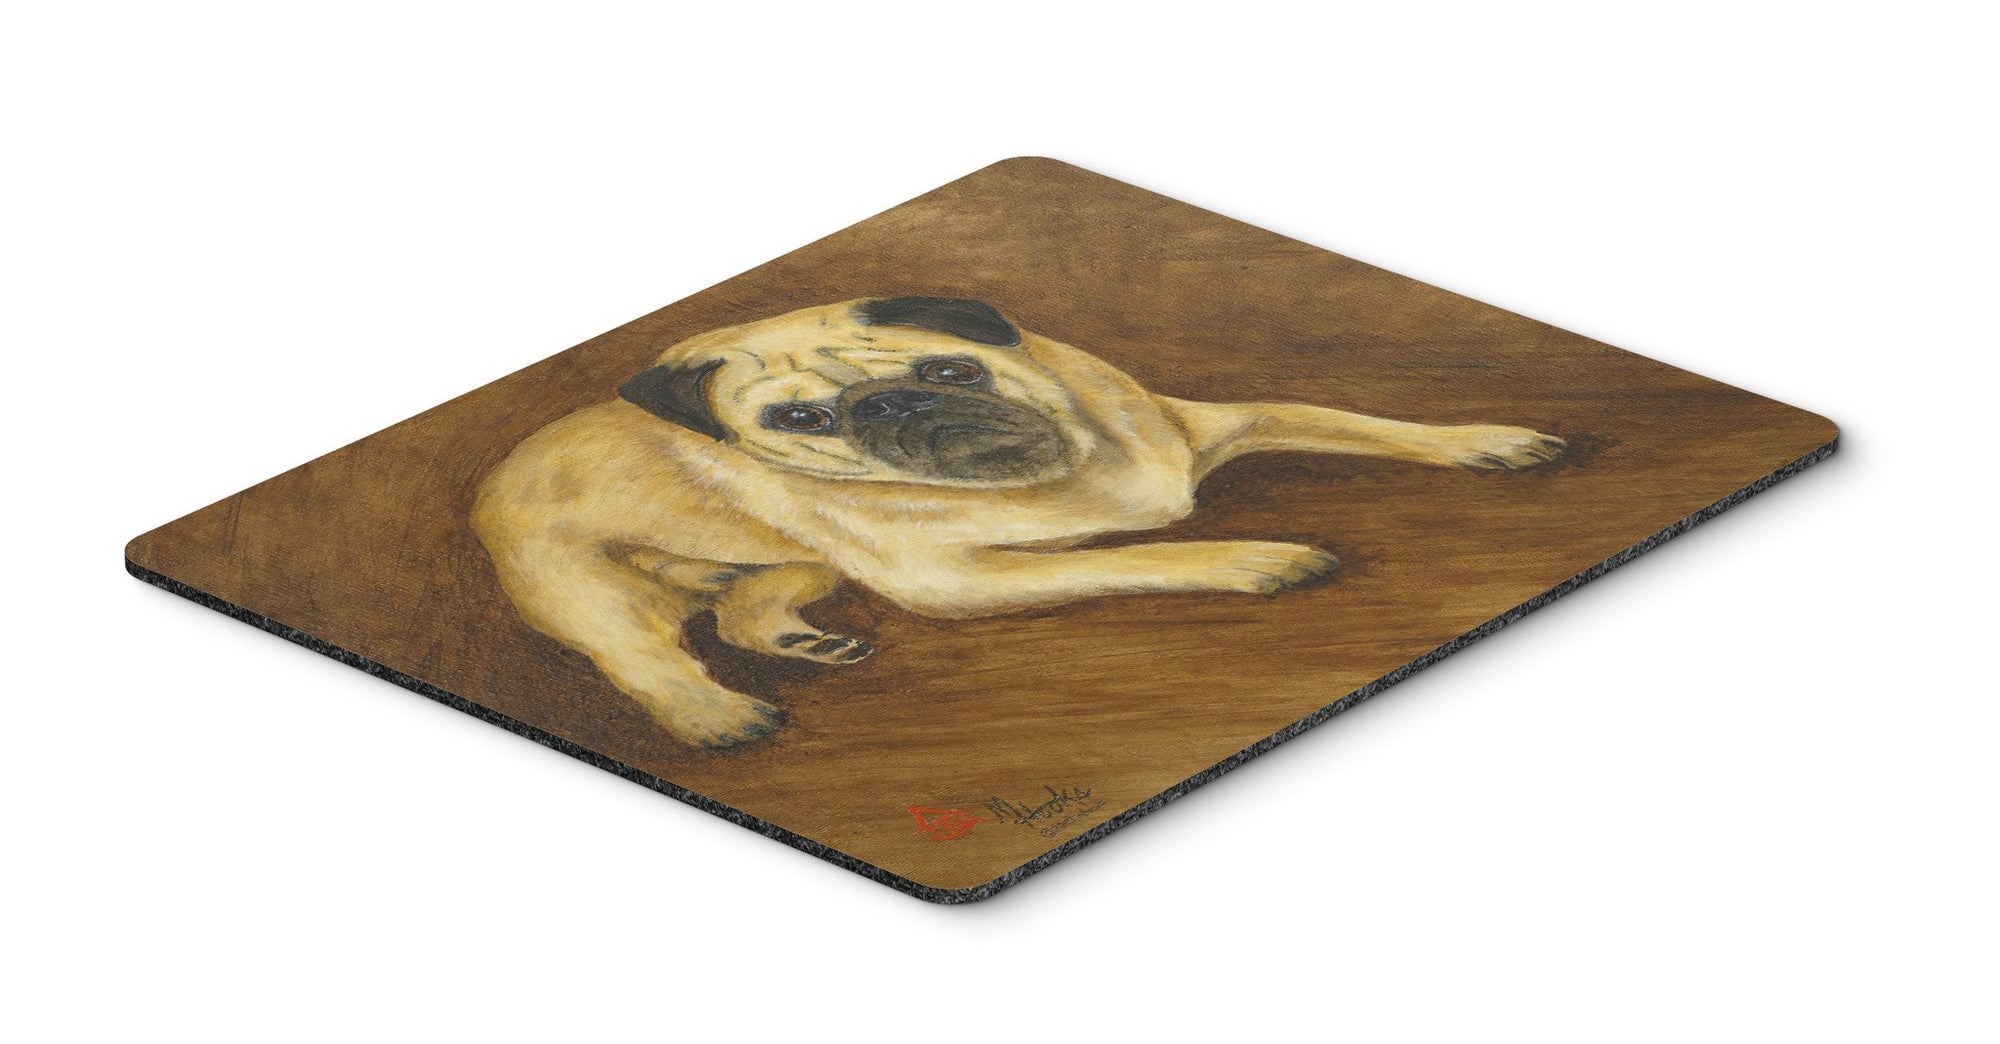 Fawn Pug Roscoe Mouse Pad, Hot Pad or Trivet MH1062MP by Caroline's Treasures